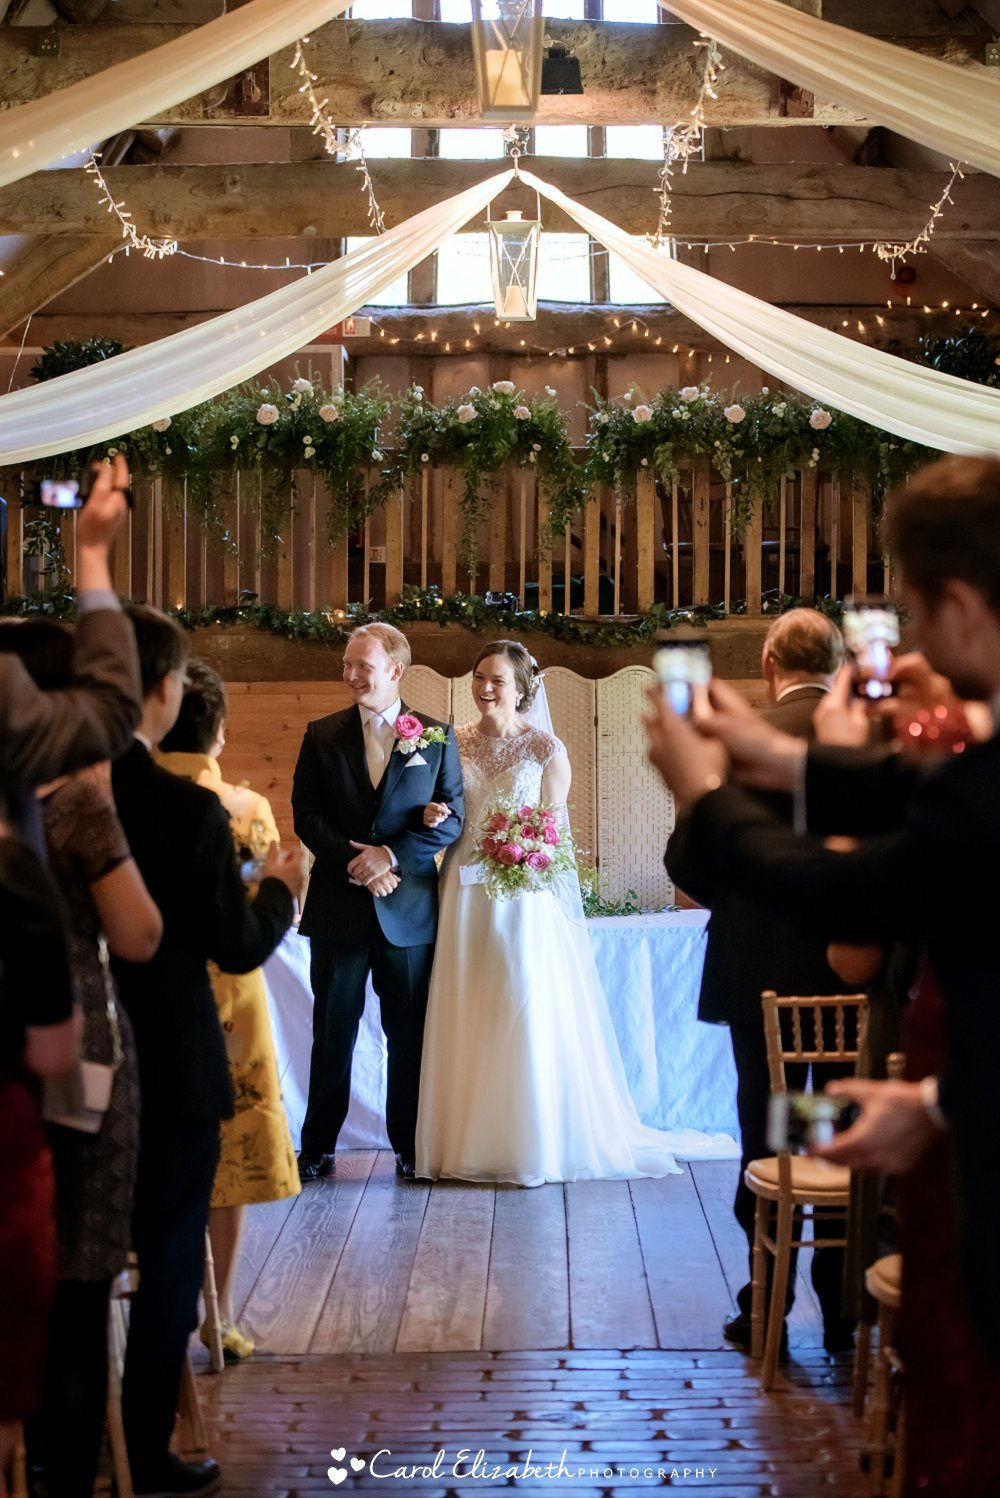 Wedding ceremonies at Lains Barn